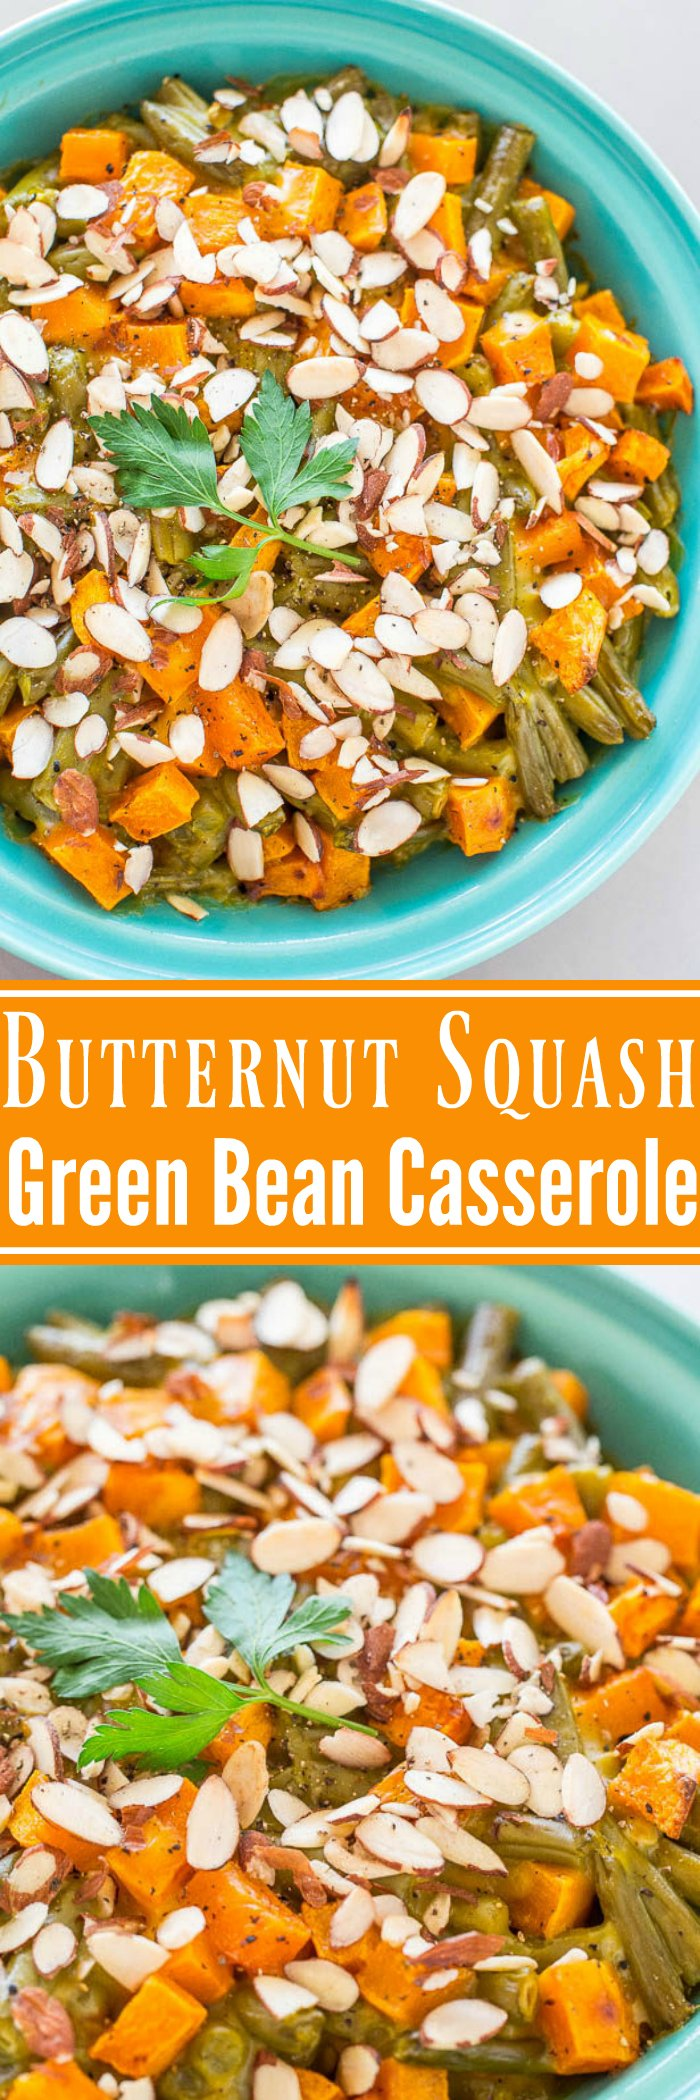 Roasted Butternut Squash Green Bean Casserole - Move over classic casserole!! This updated version has roasted butternut squash and crunchy sliced almonds!! Perfect for Thanksgiving or holiday meals!!